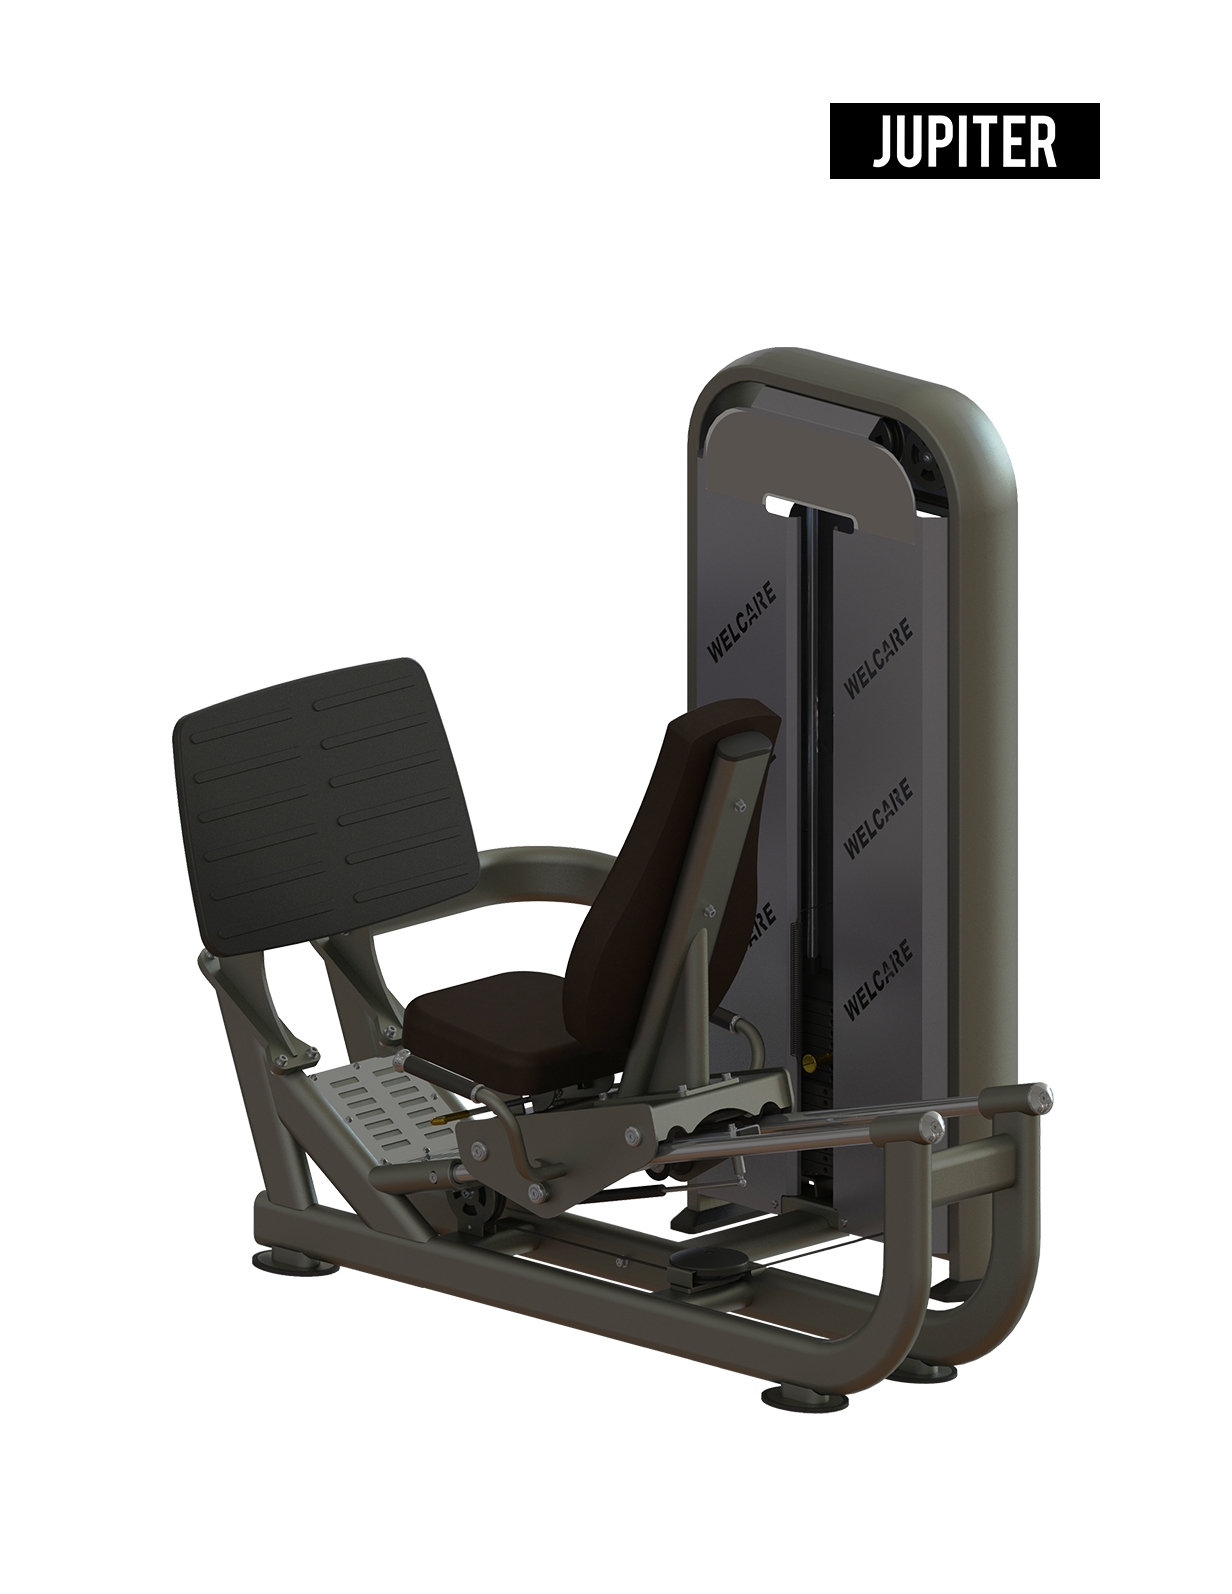 JL8911 SEATED LEG PRESS